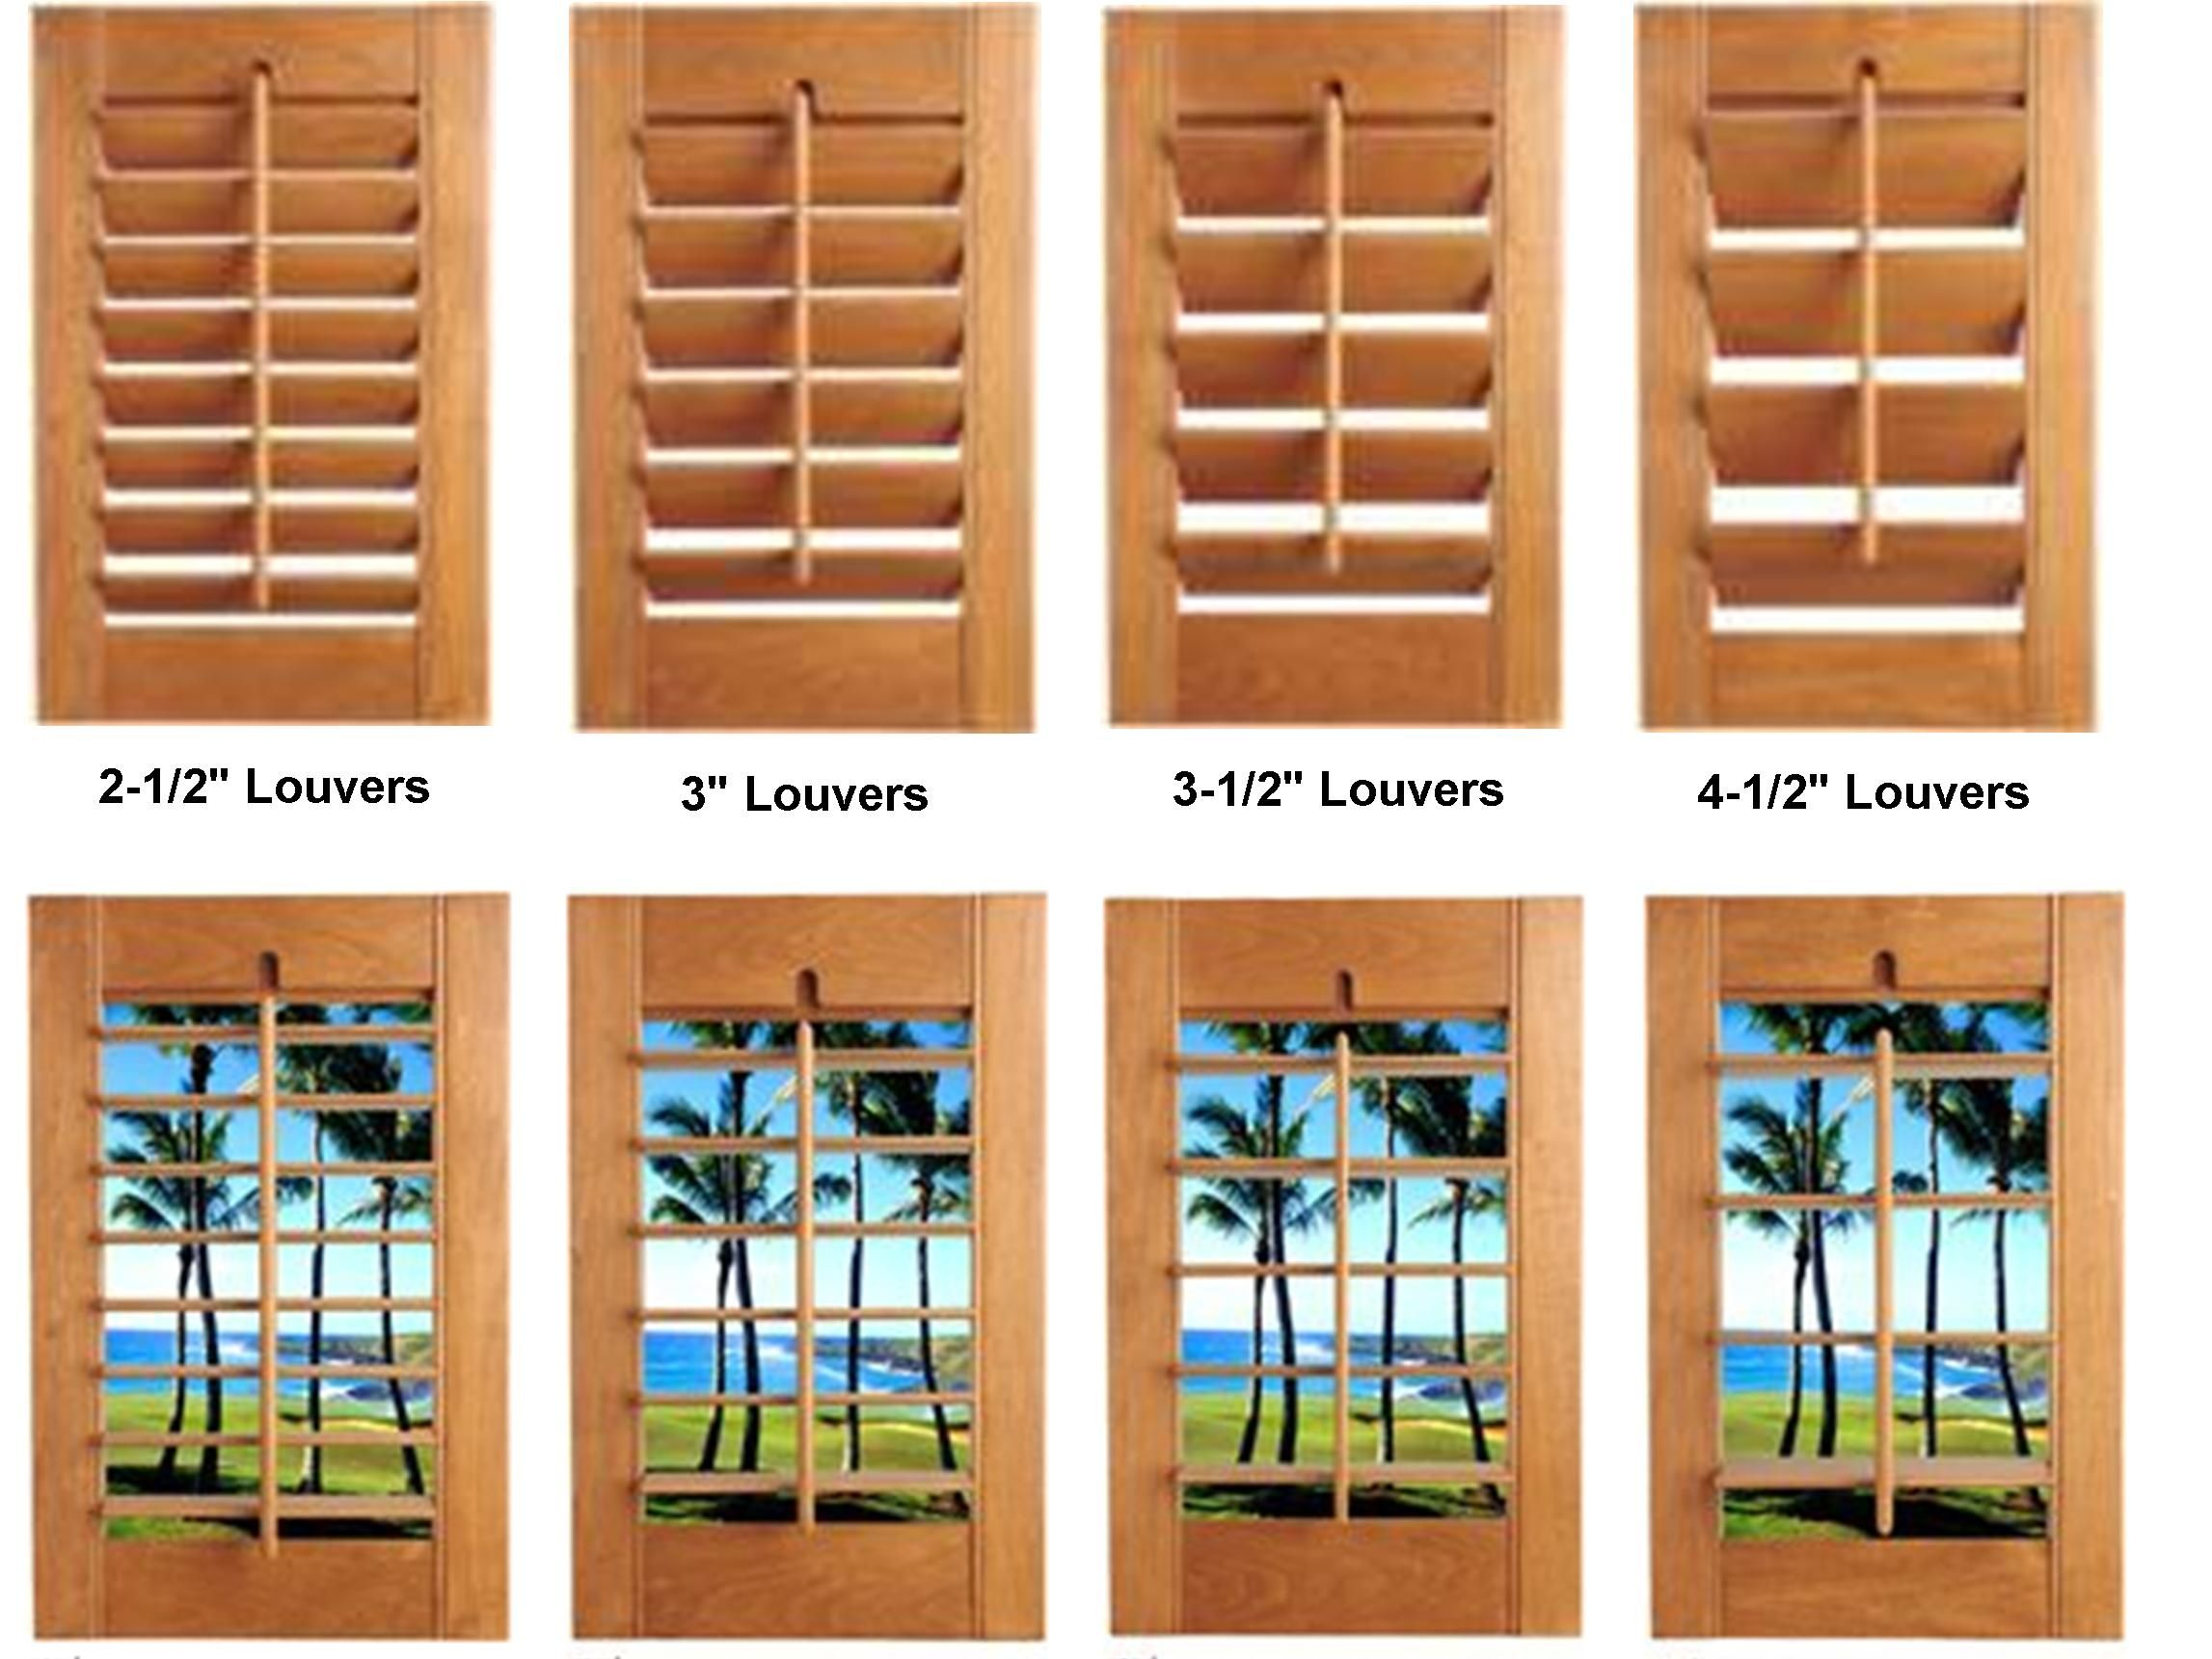 Windows with blinds inside the glass  interior windo shutters  Consulation  Blinds Shutters Window